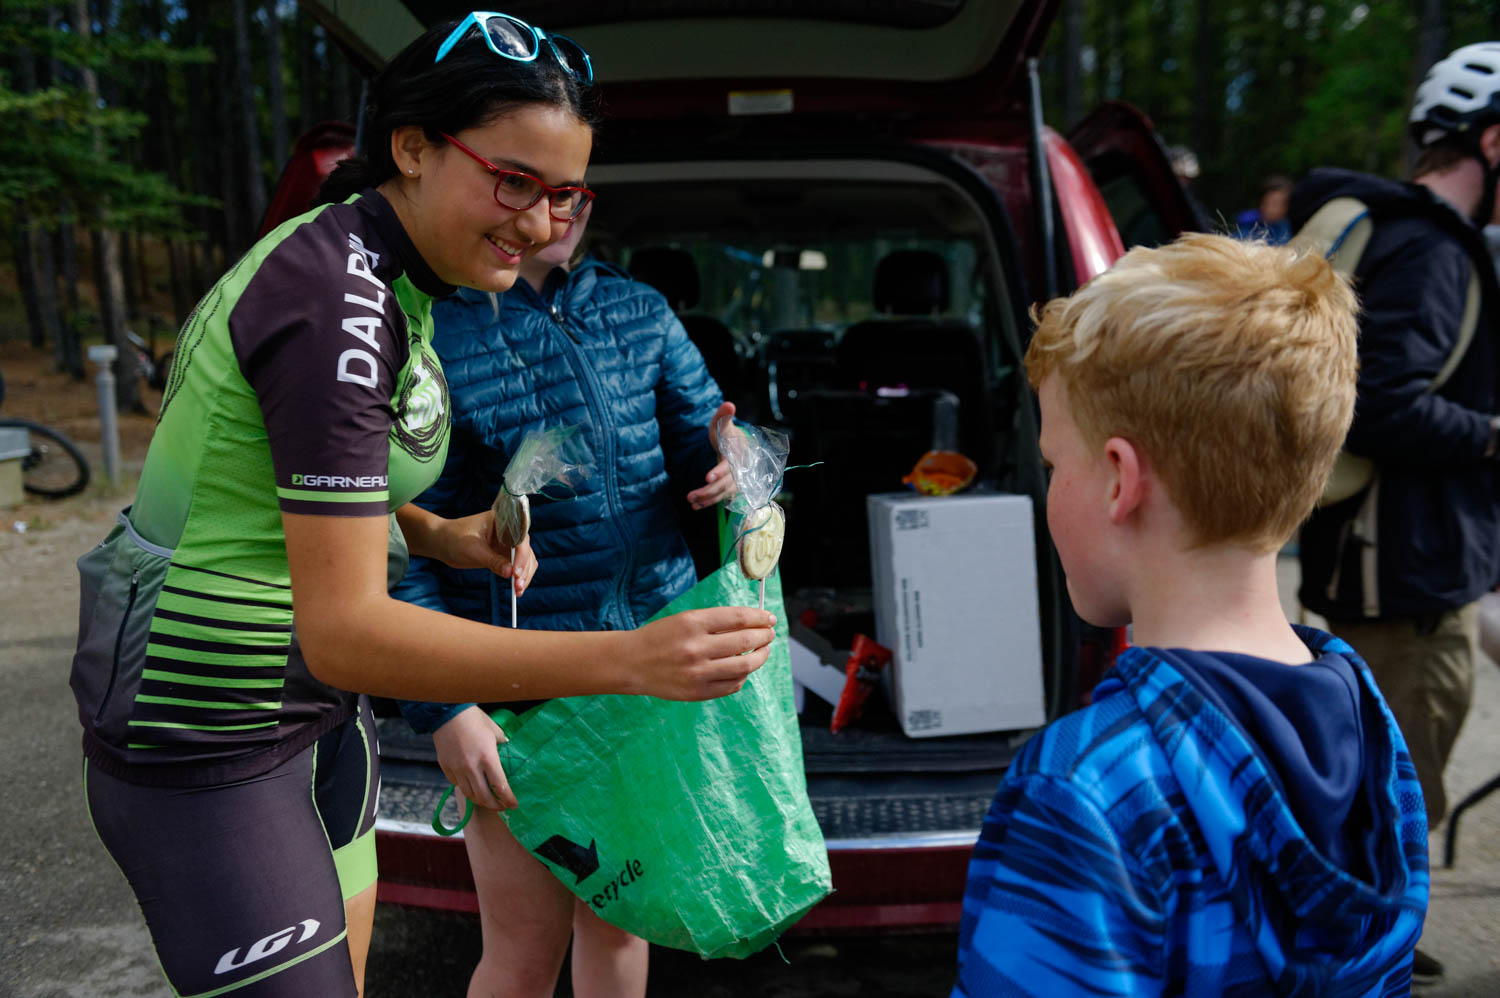 Mathilde helped for a mountain bike race put together by U Kon Echelon and Participaction. She was very proud to give her handmade chocolate to the kids as prizes. They were delighted too, obviously!